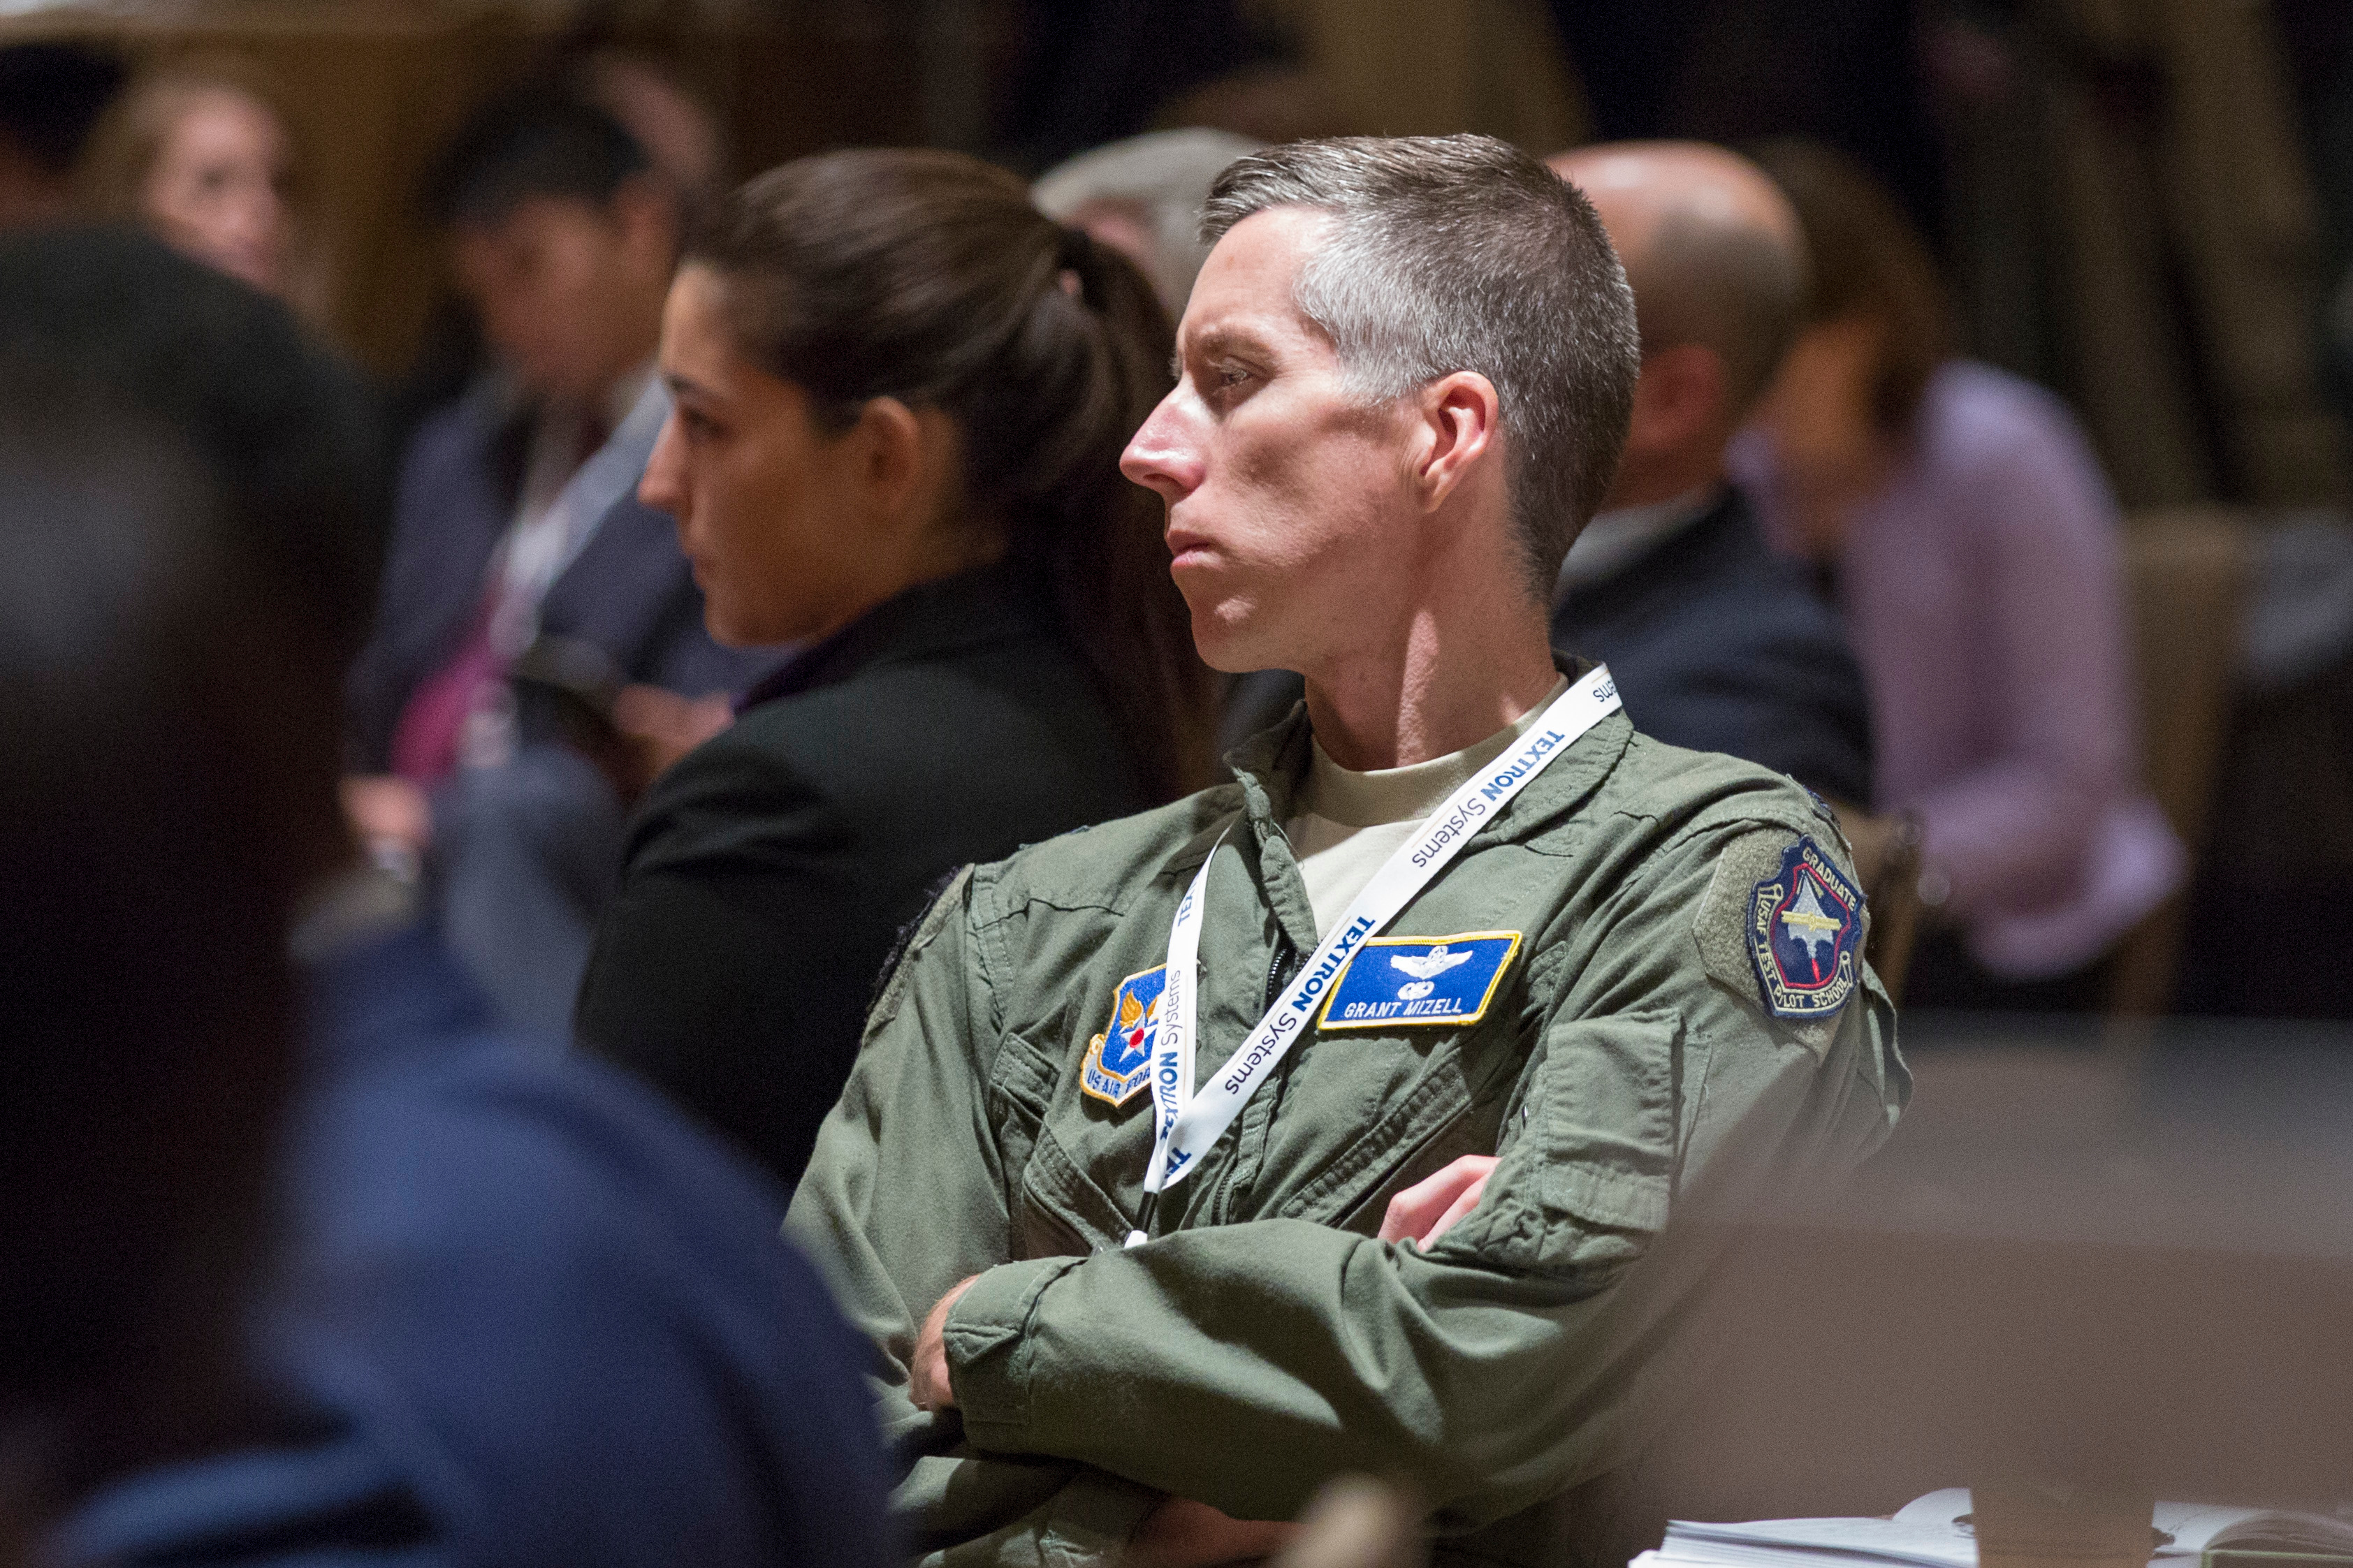 An attendee of the Defense News Conference listens to a panel on unmanned platforms on Sept. 6, 2017. (Amber Corrin/Staff)